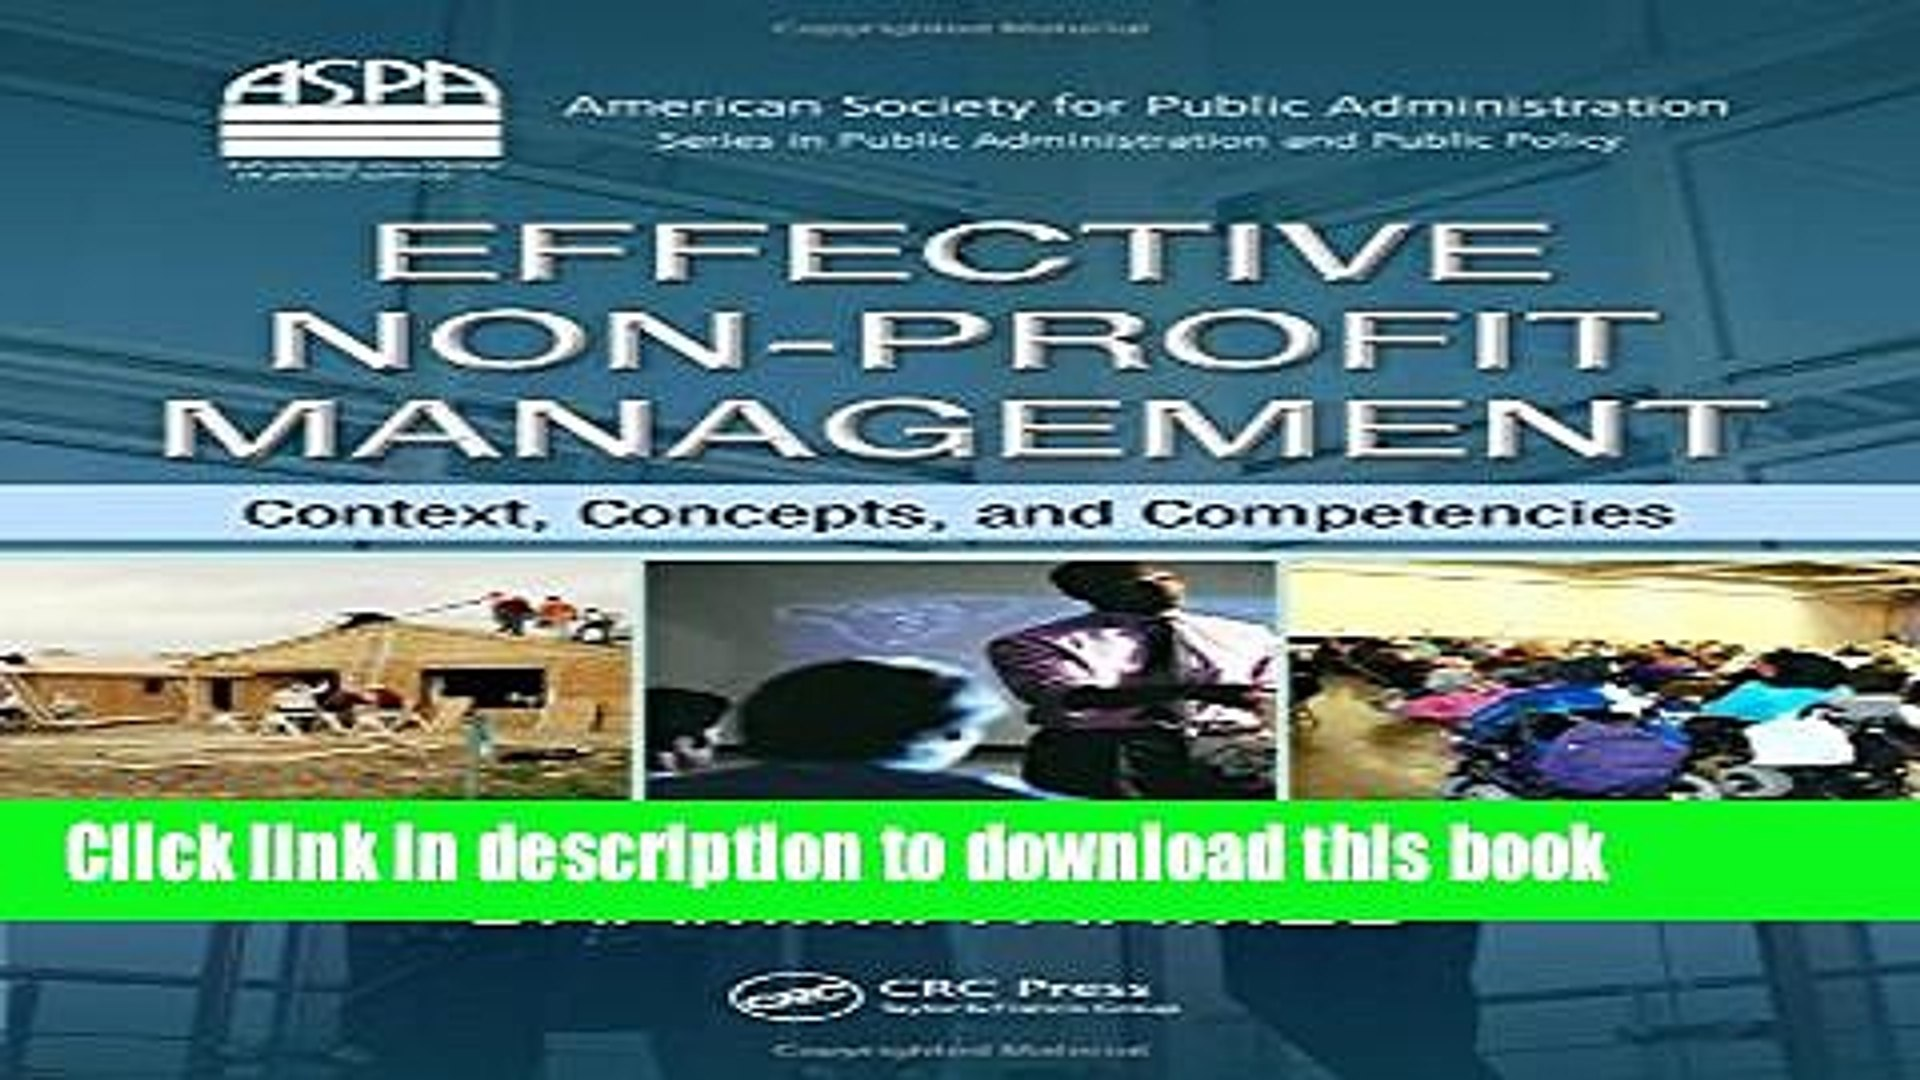 [Download] Effective Non-Profit Management: Context, Concepts, and Competencies (ASPA Series in